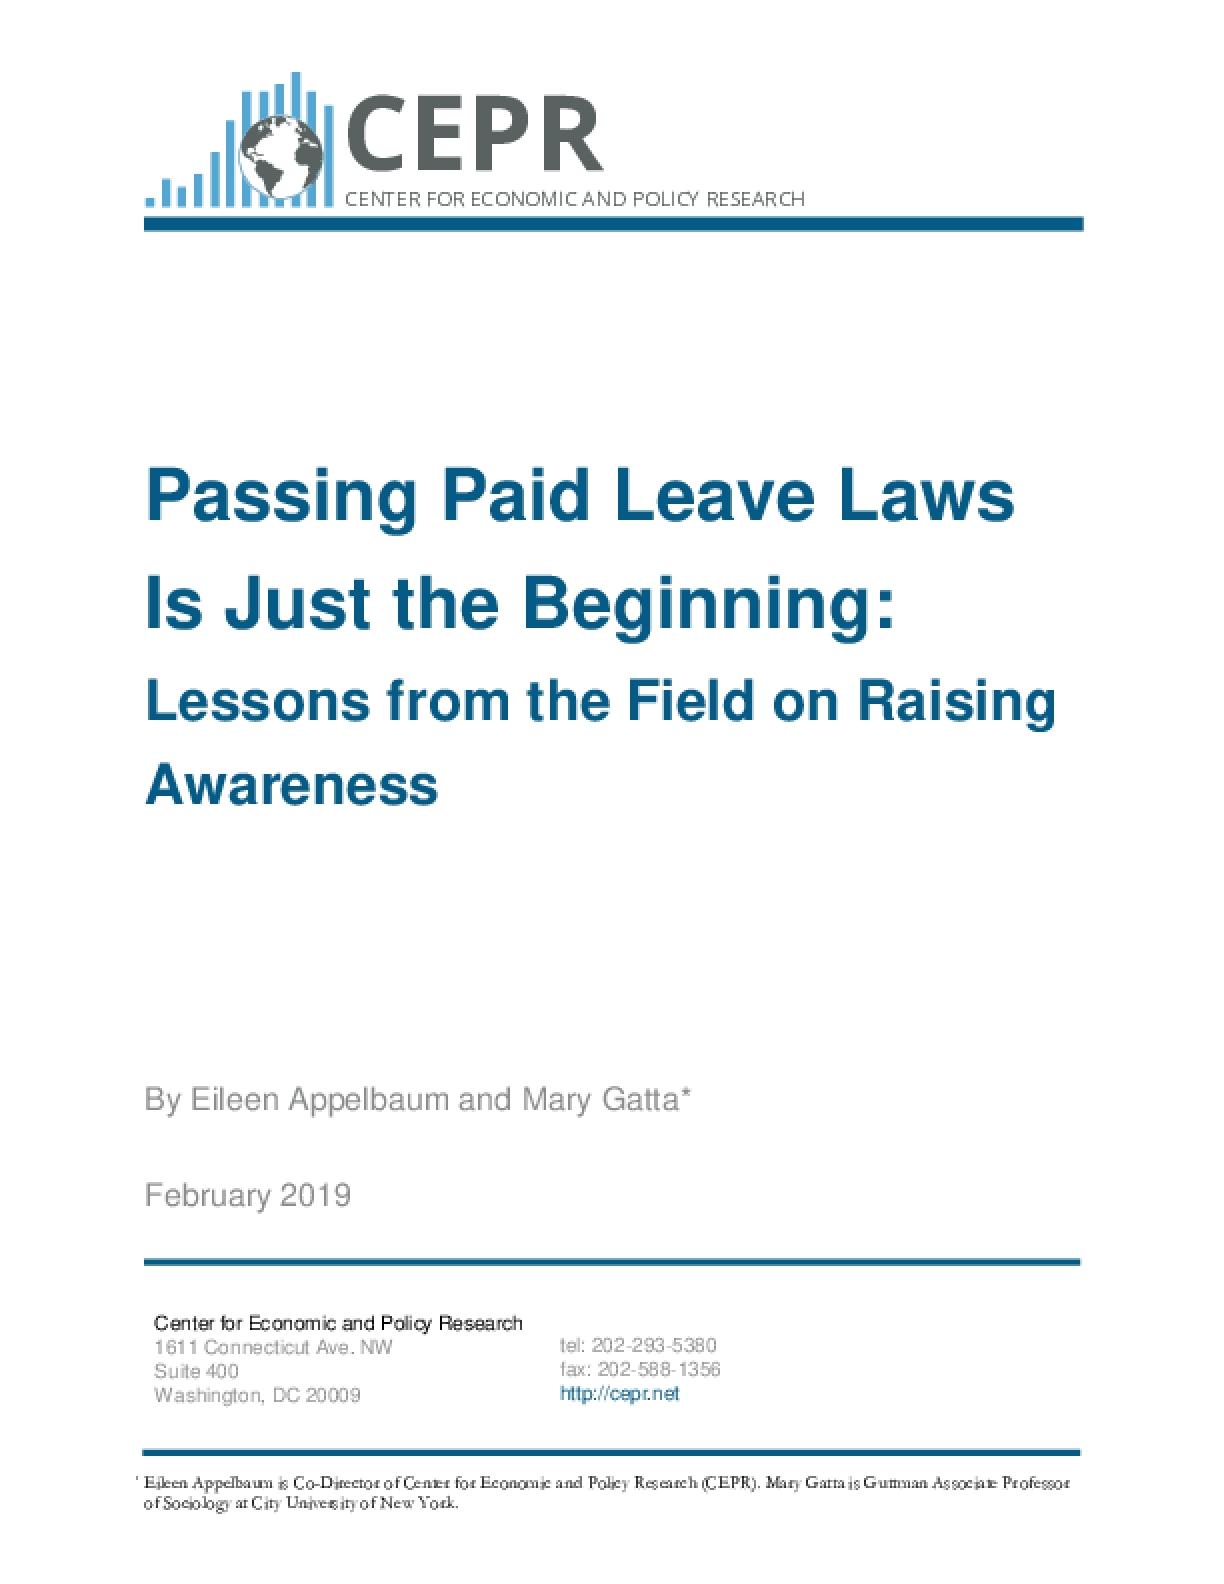 Passing Paid Leave Laws Is Just the Beginning: Lessons from the Field on Raising Awareness